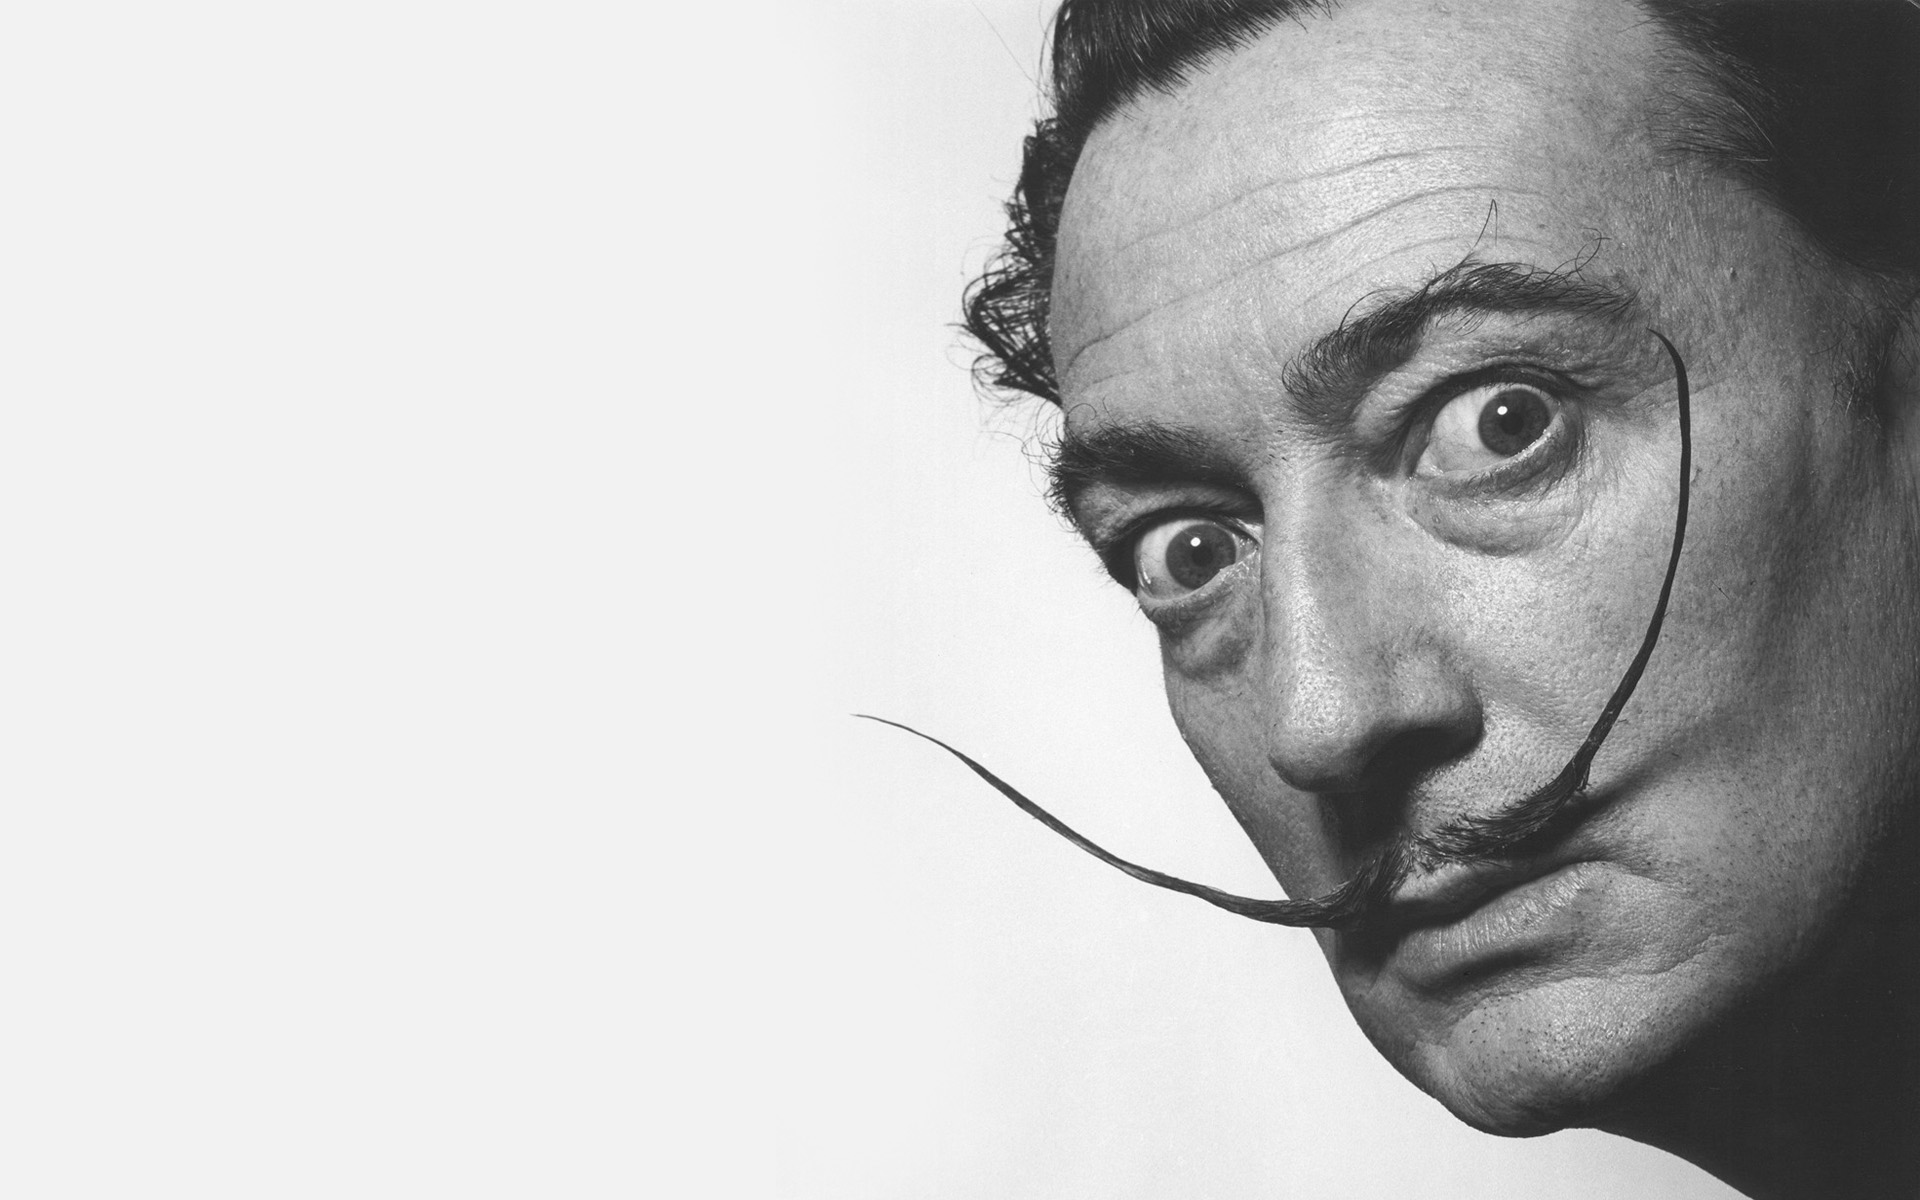 salvador-dali-ve-surrealizm-calismalari-artmanik